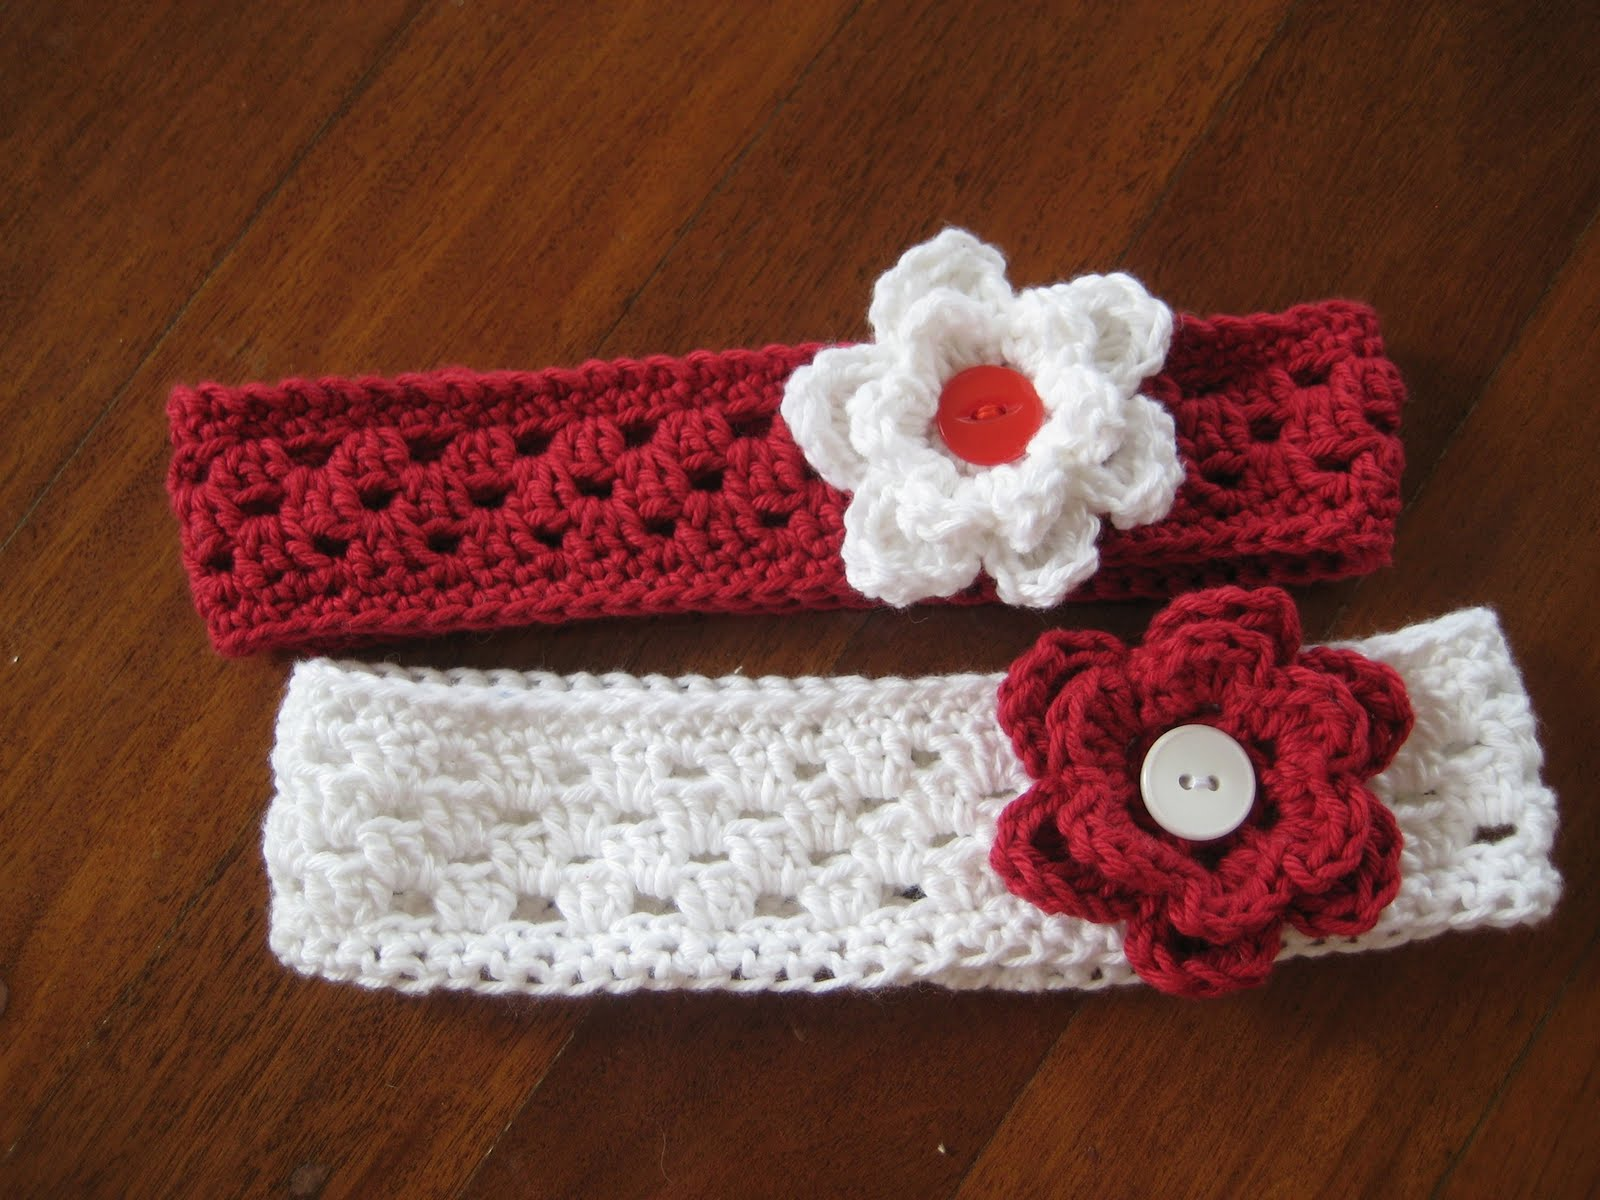 Never Knew: More crochet gifts...